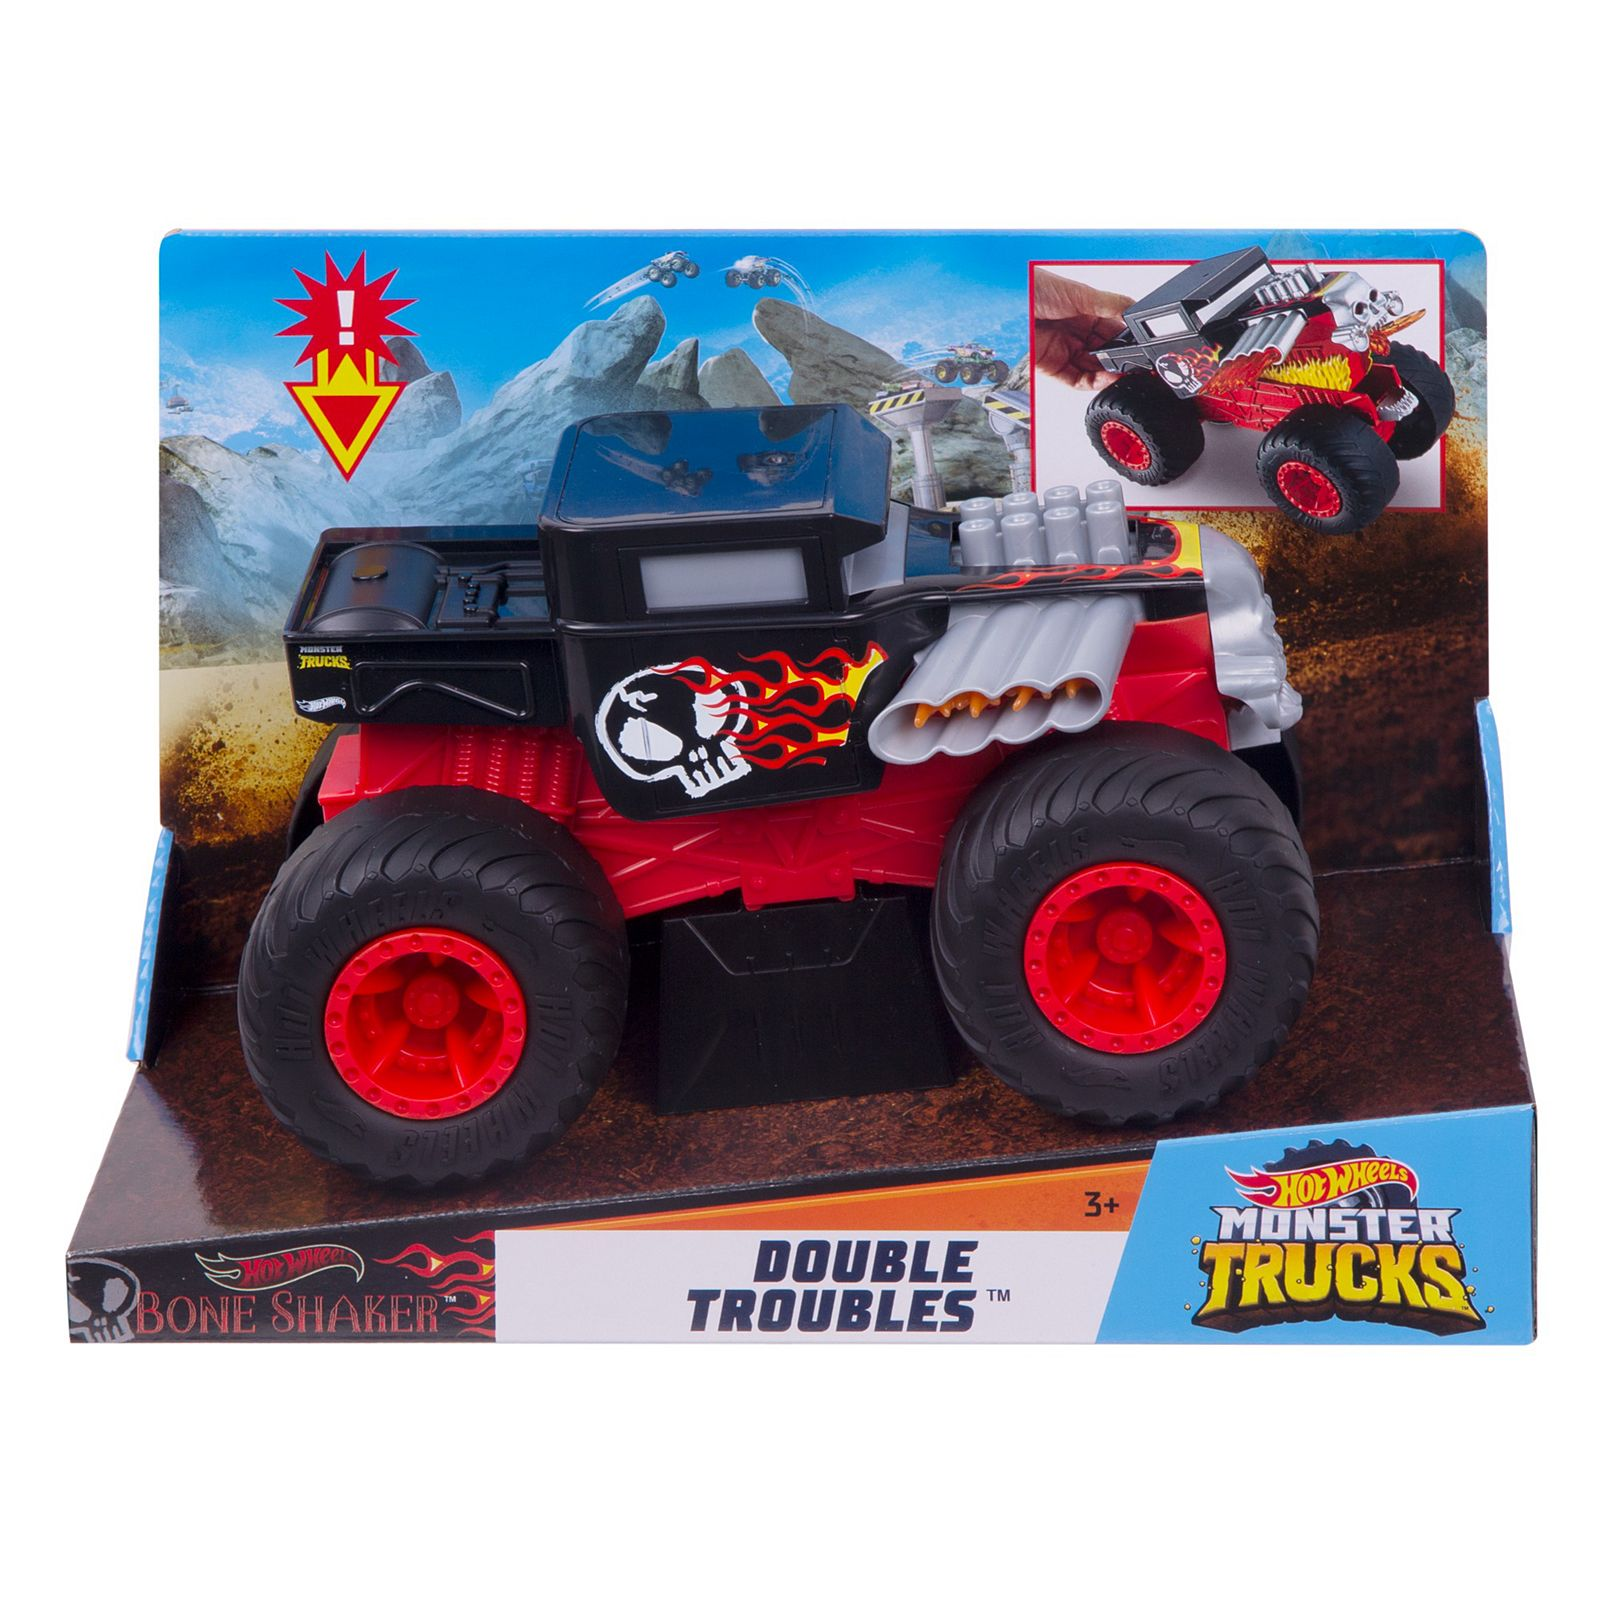 Hot Wheels Monster Trucks 1 24 Double Troubled Vehicle Collection Gcg06 Hot Wheels Shop